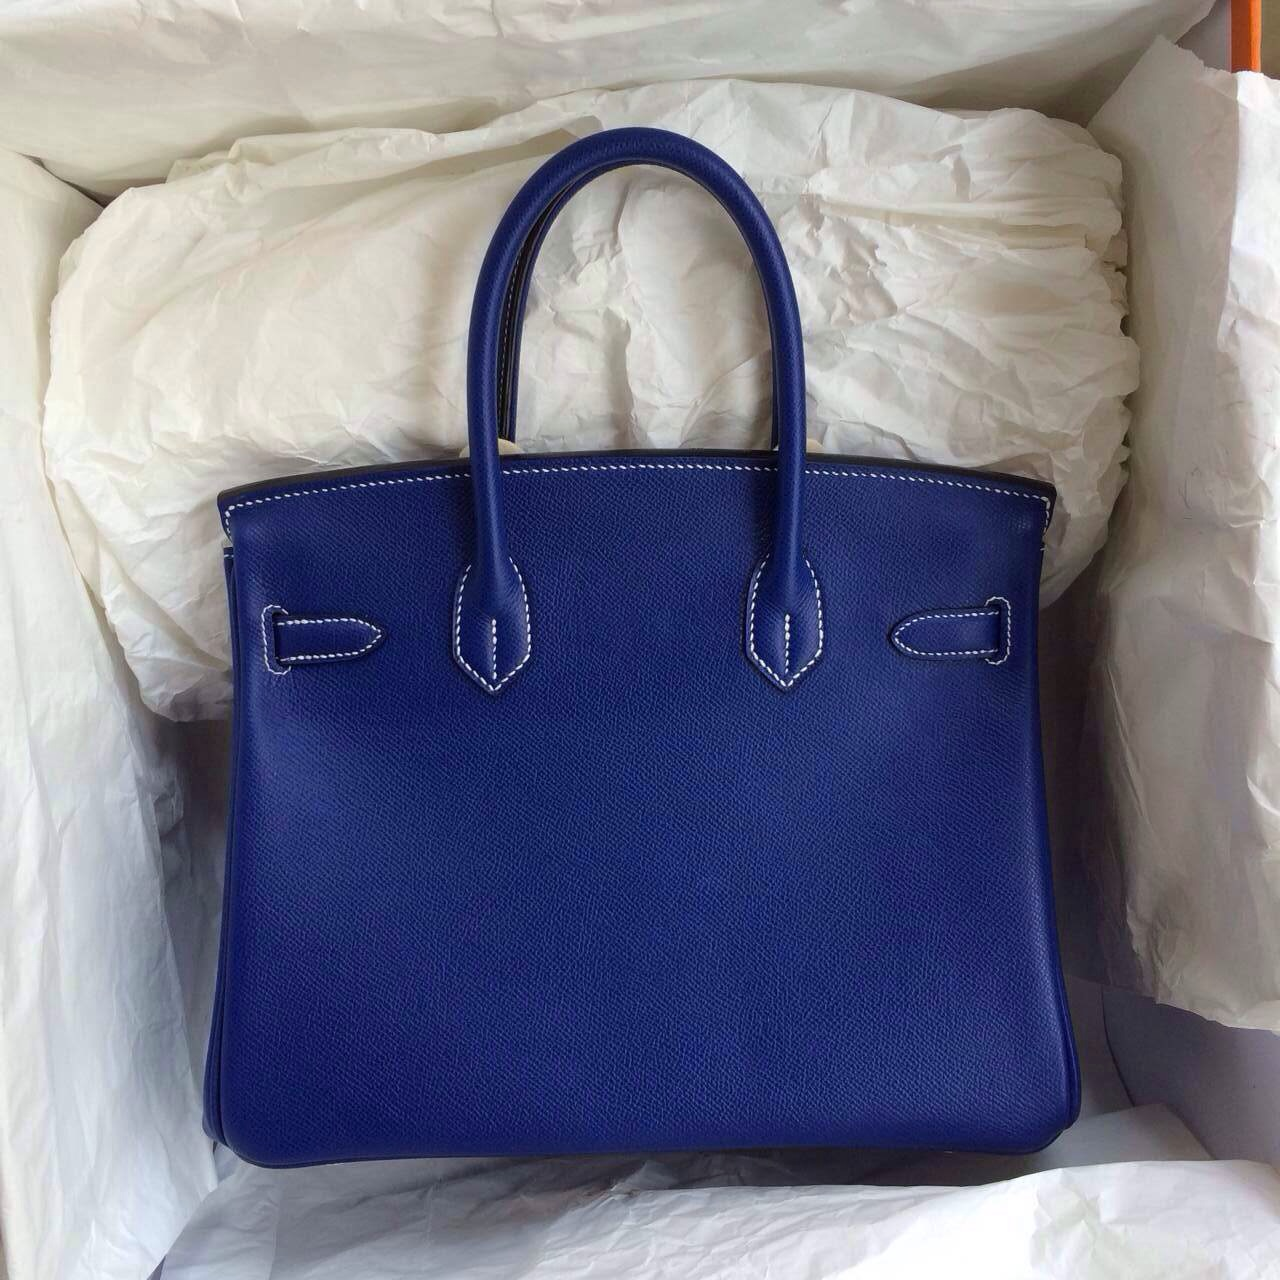 Birkin handbag togo leather Shiny Bleu Electrique Palladium Hardware